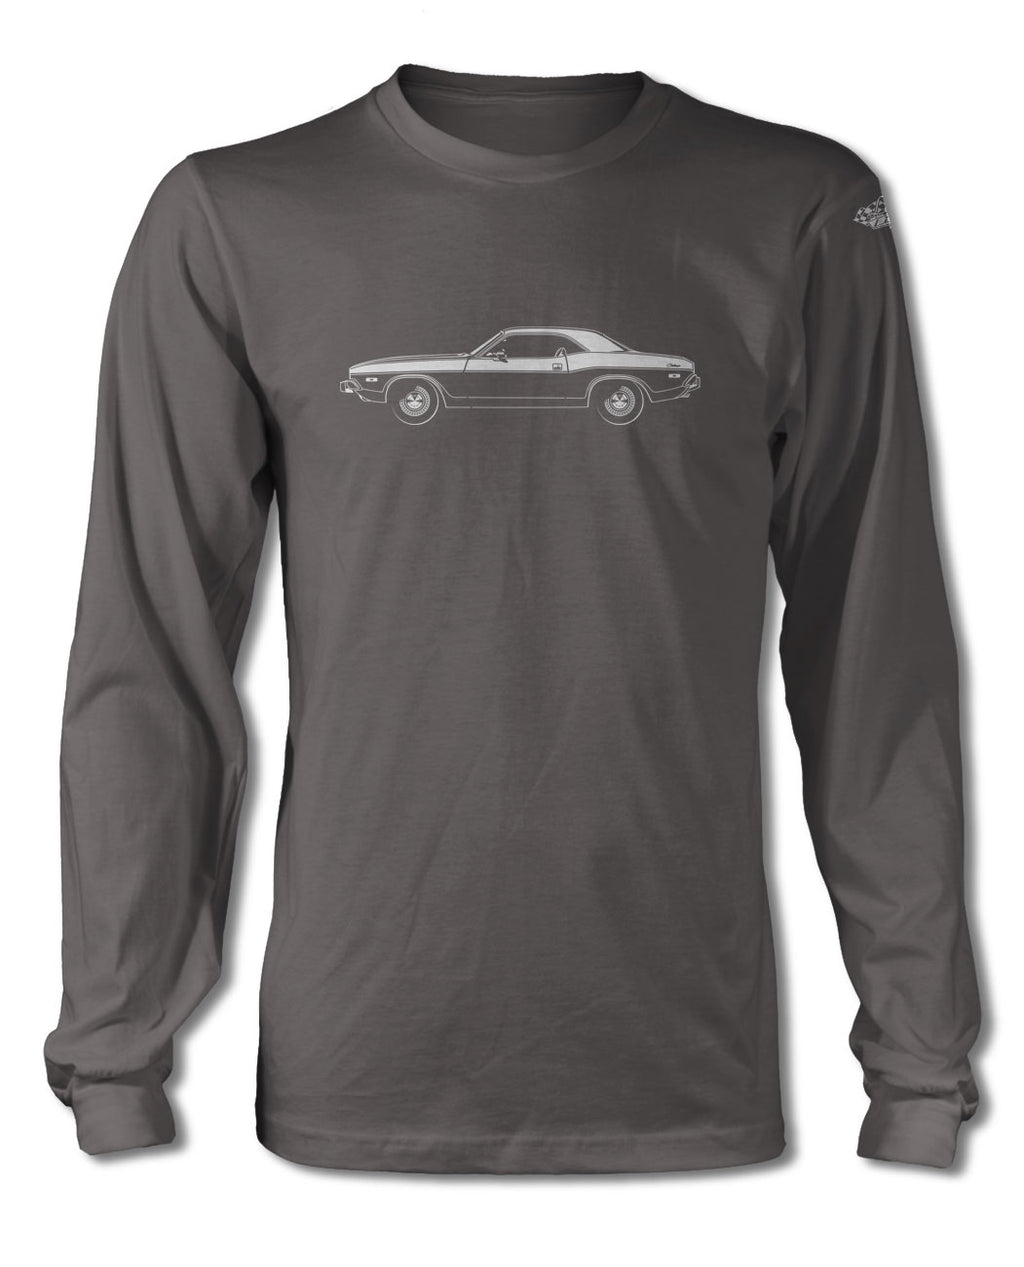 1974 Dodge Challenger Base Coupe T-Shirt - Long Sleeves - Side View